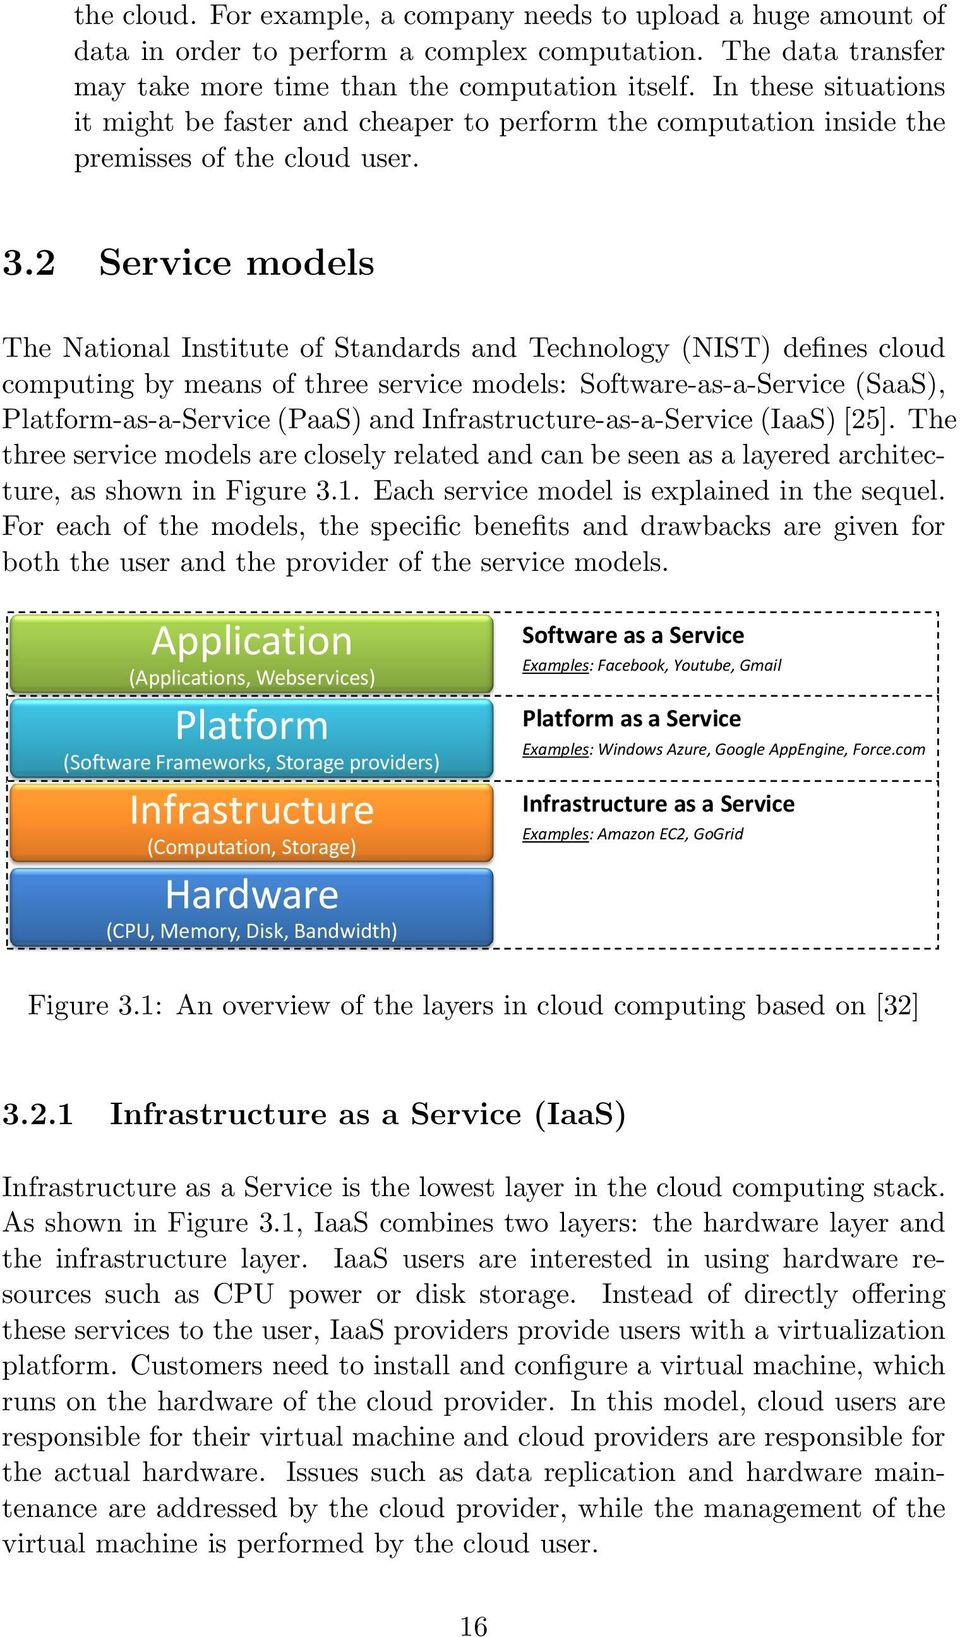 2 Service models The National Institute of Standards and Technology (NIST) defines cloud computing by means of three service models: Software-as-a-Service (SaaS), Platform-as-a-Service (PaaS) and